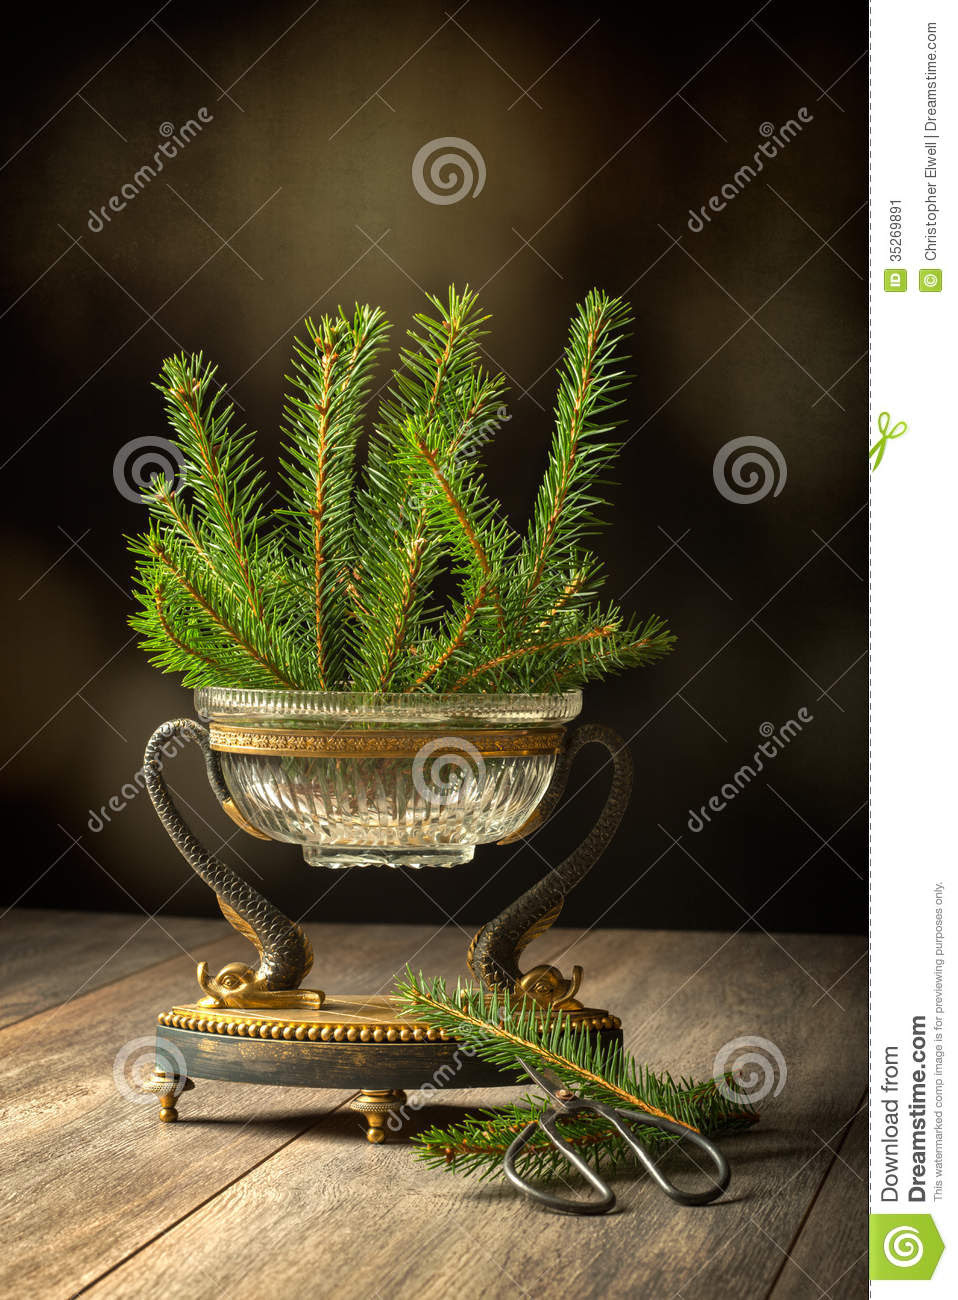 Elegant antique vase full of pine sprigs for Christmas decoration.